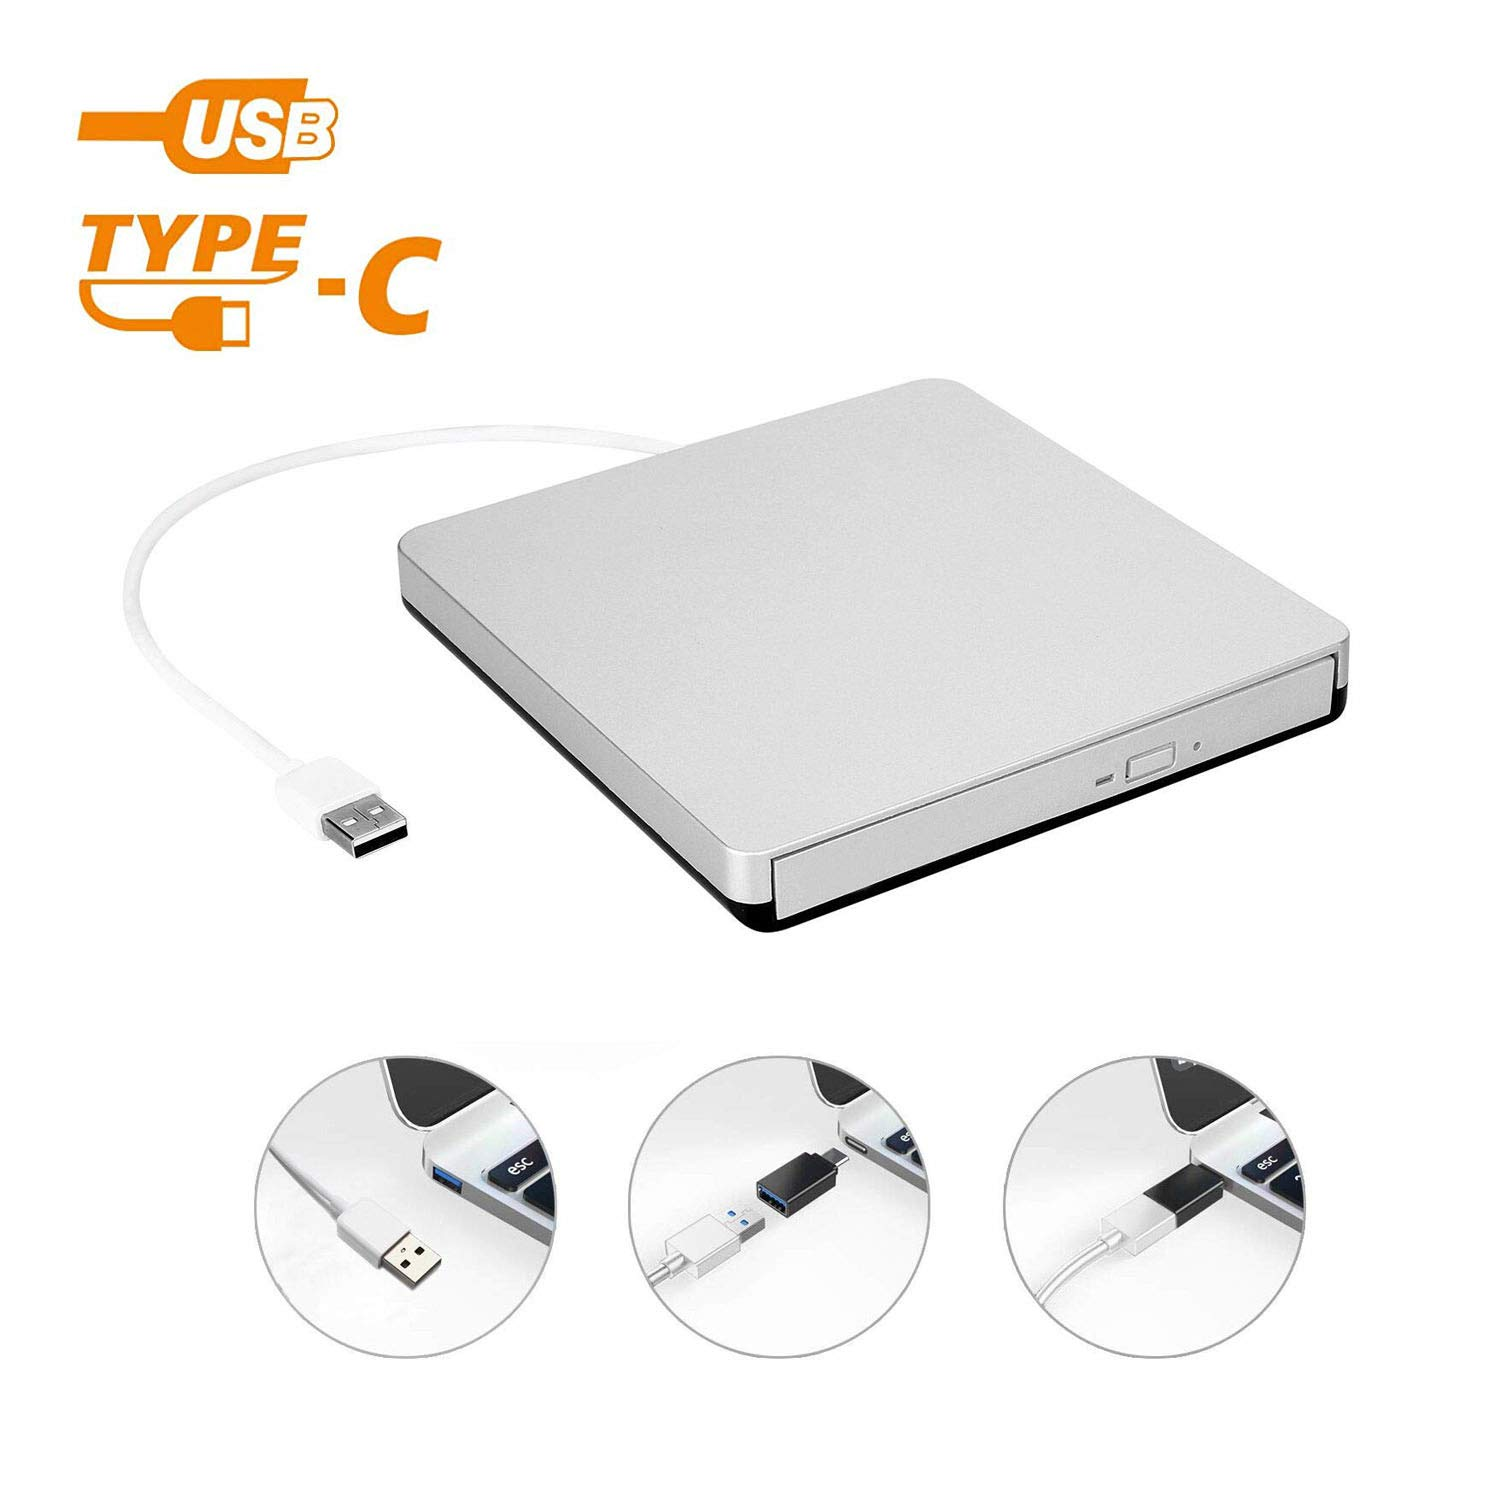 External USB 2.0 DVD Drive, DVD +/-RW CD +/-RW Writer Burner Player with Classic Silvery for MacBook Air, MacBook Pro, Mac OS, PC Laptop by DoHonest